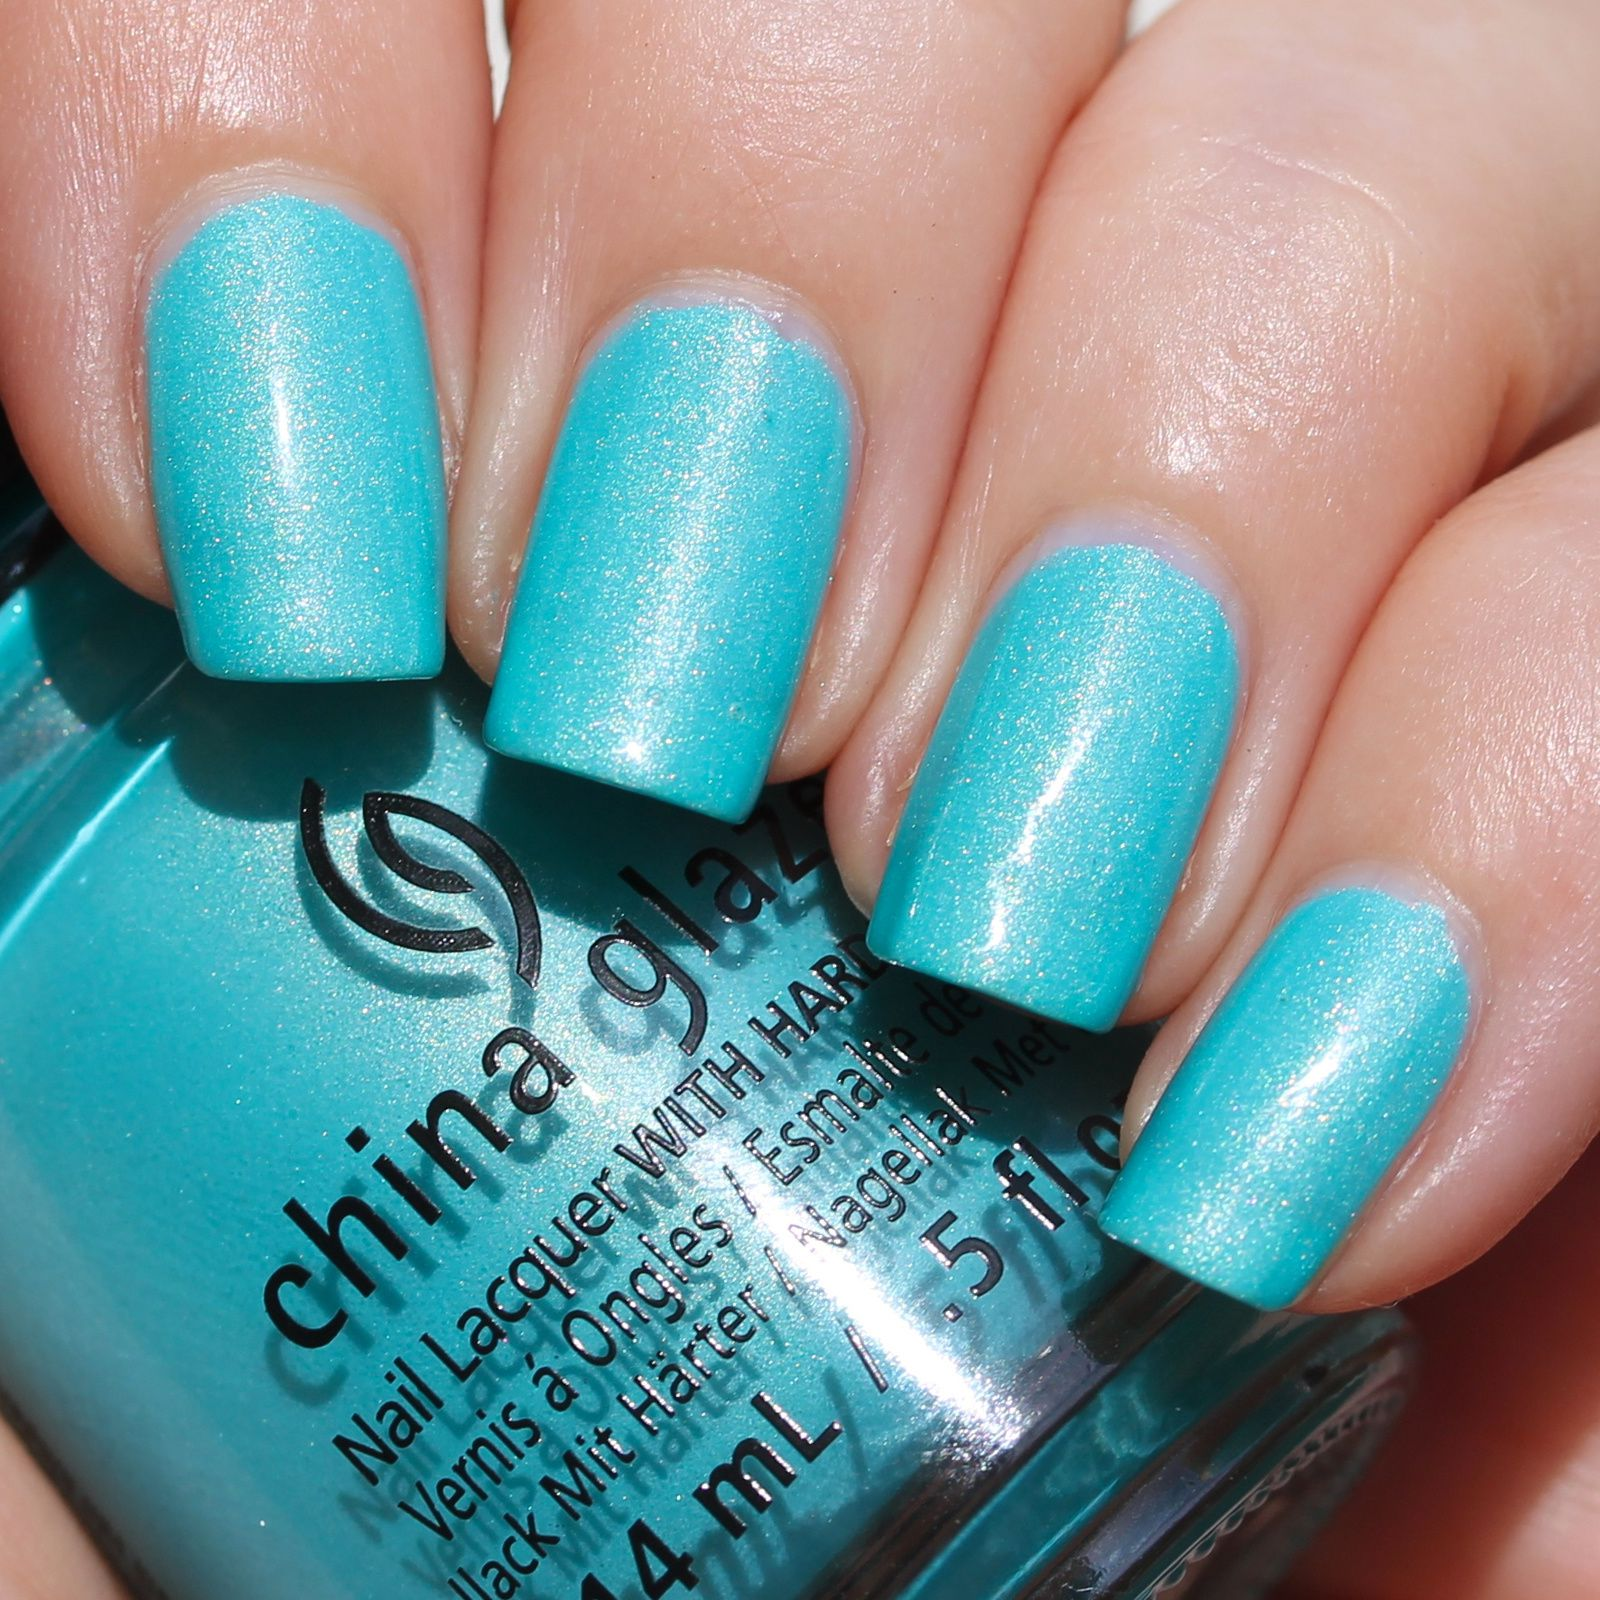 Duri Rejuvacote / China Glaze What I Like About Blue / Sally Hansen Miracle Gel Top Coat